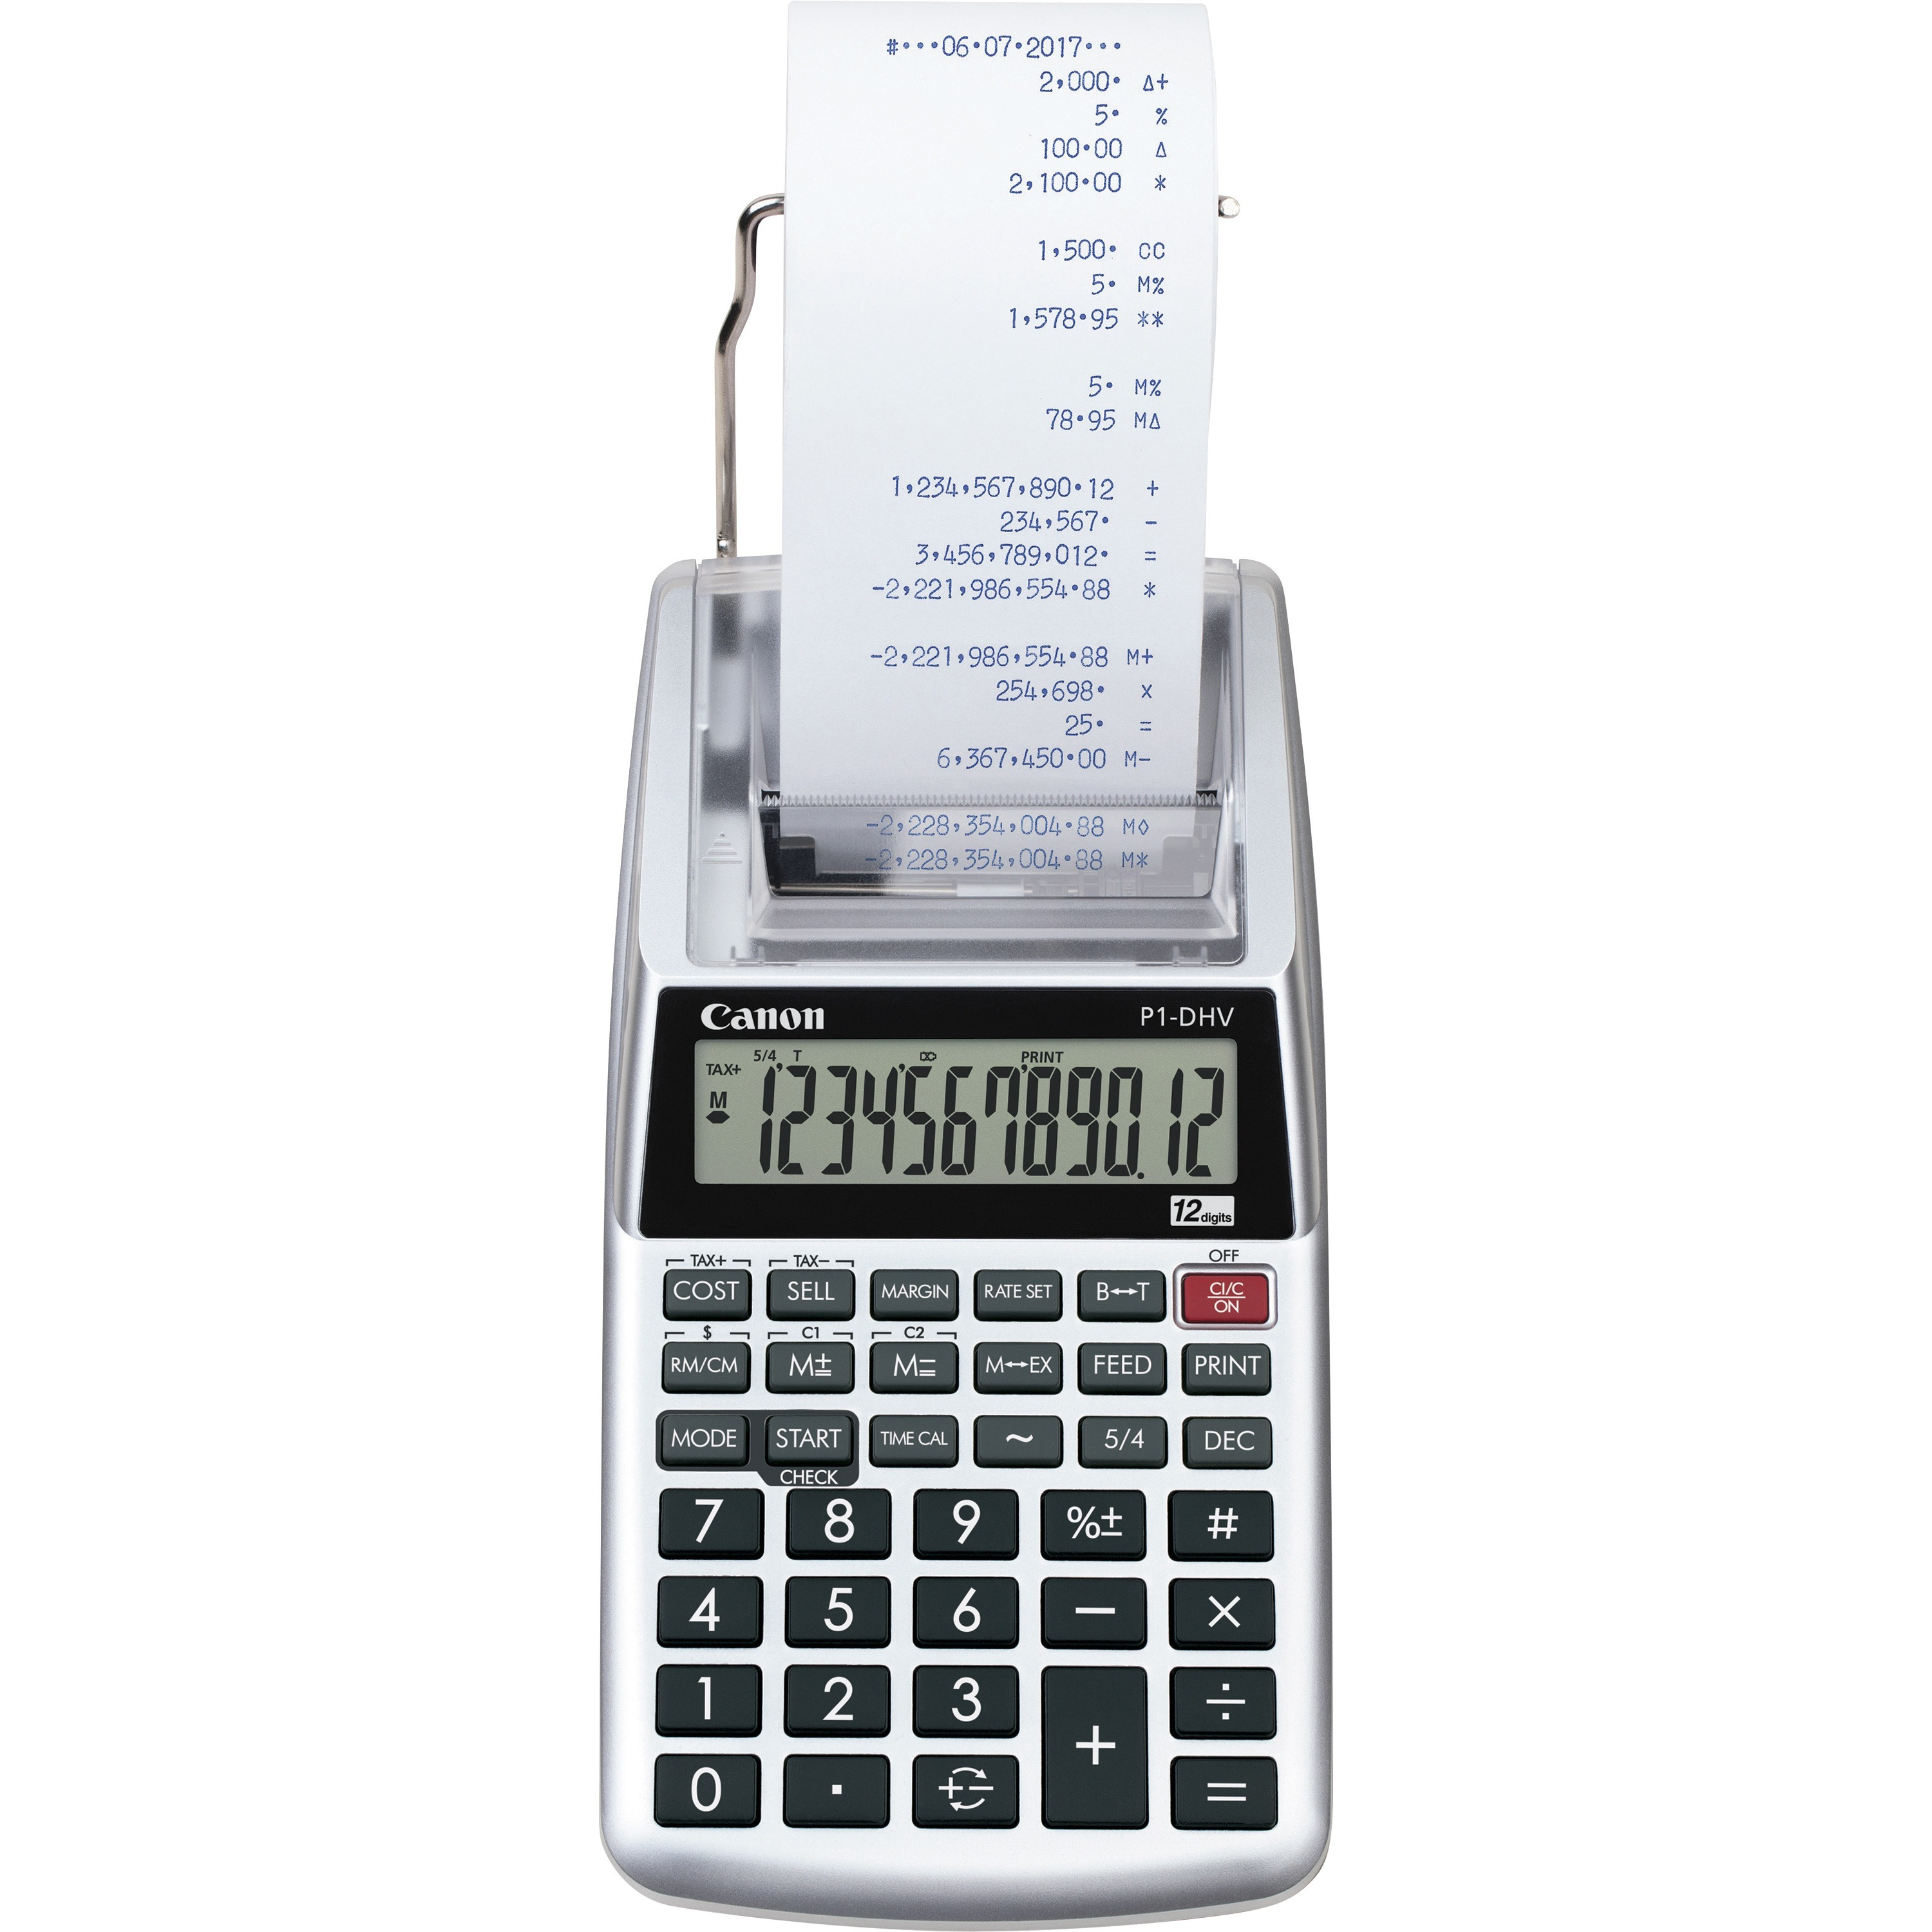 Canon P1DHV3 Compact Printing Calculator, Sliver, 1 Each (Quantity)